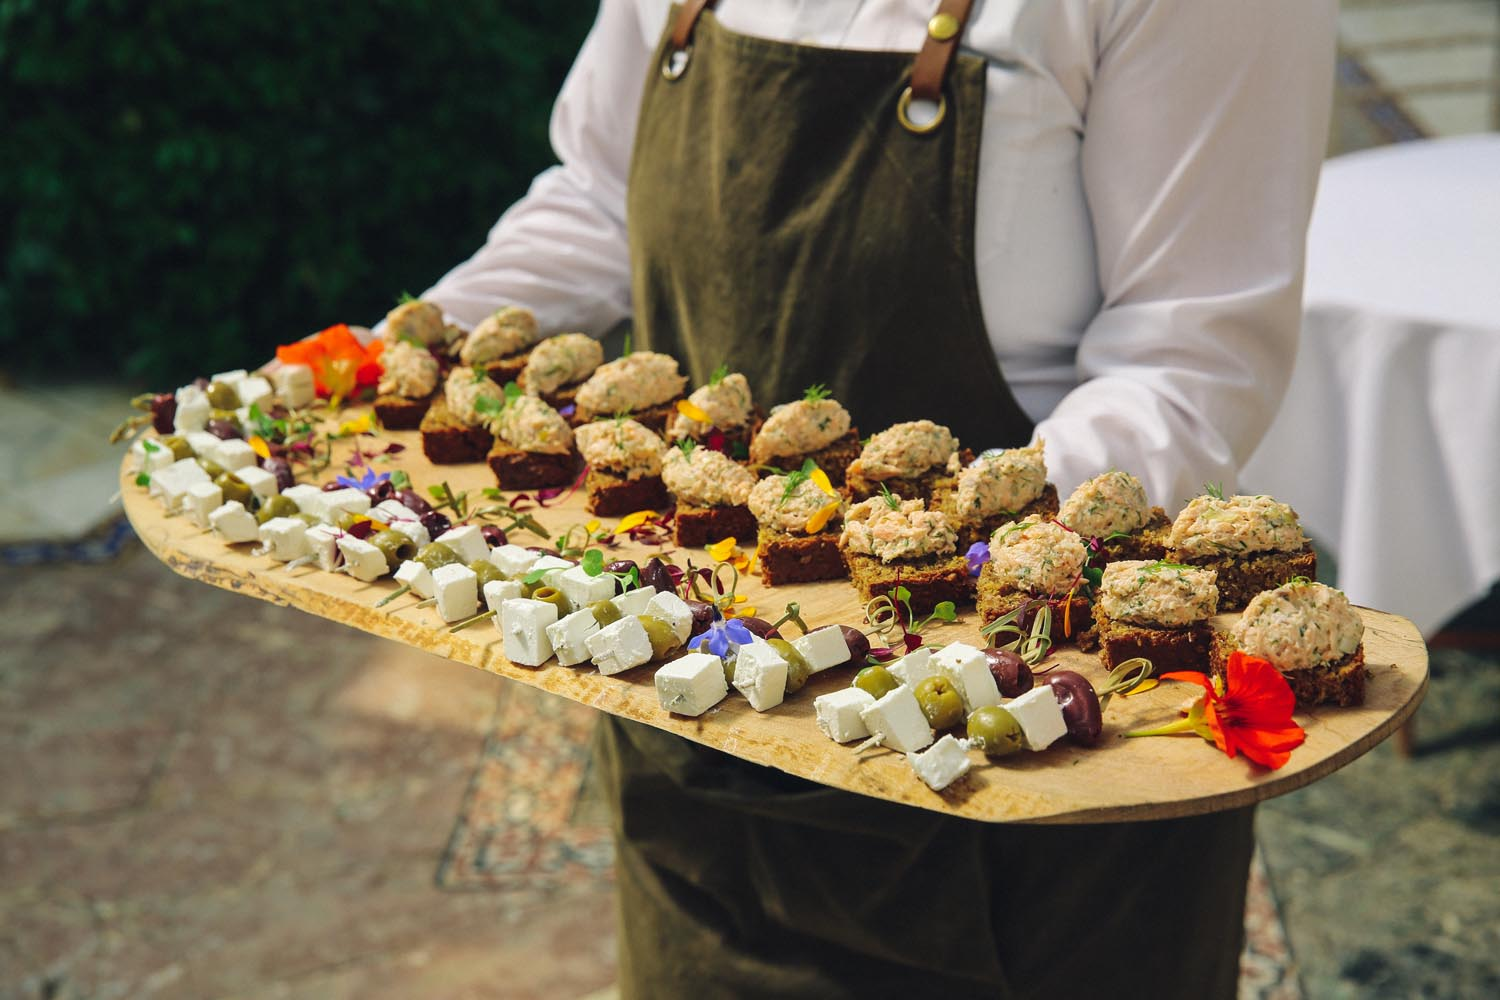 Canapes being served at a wedding